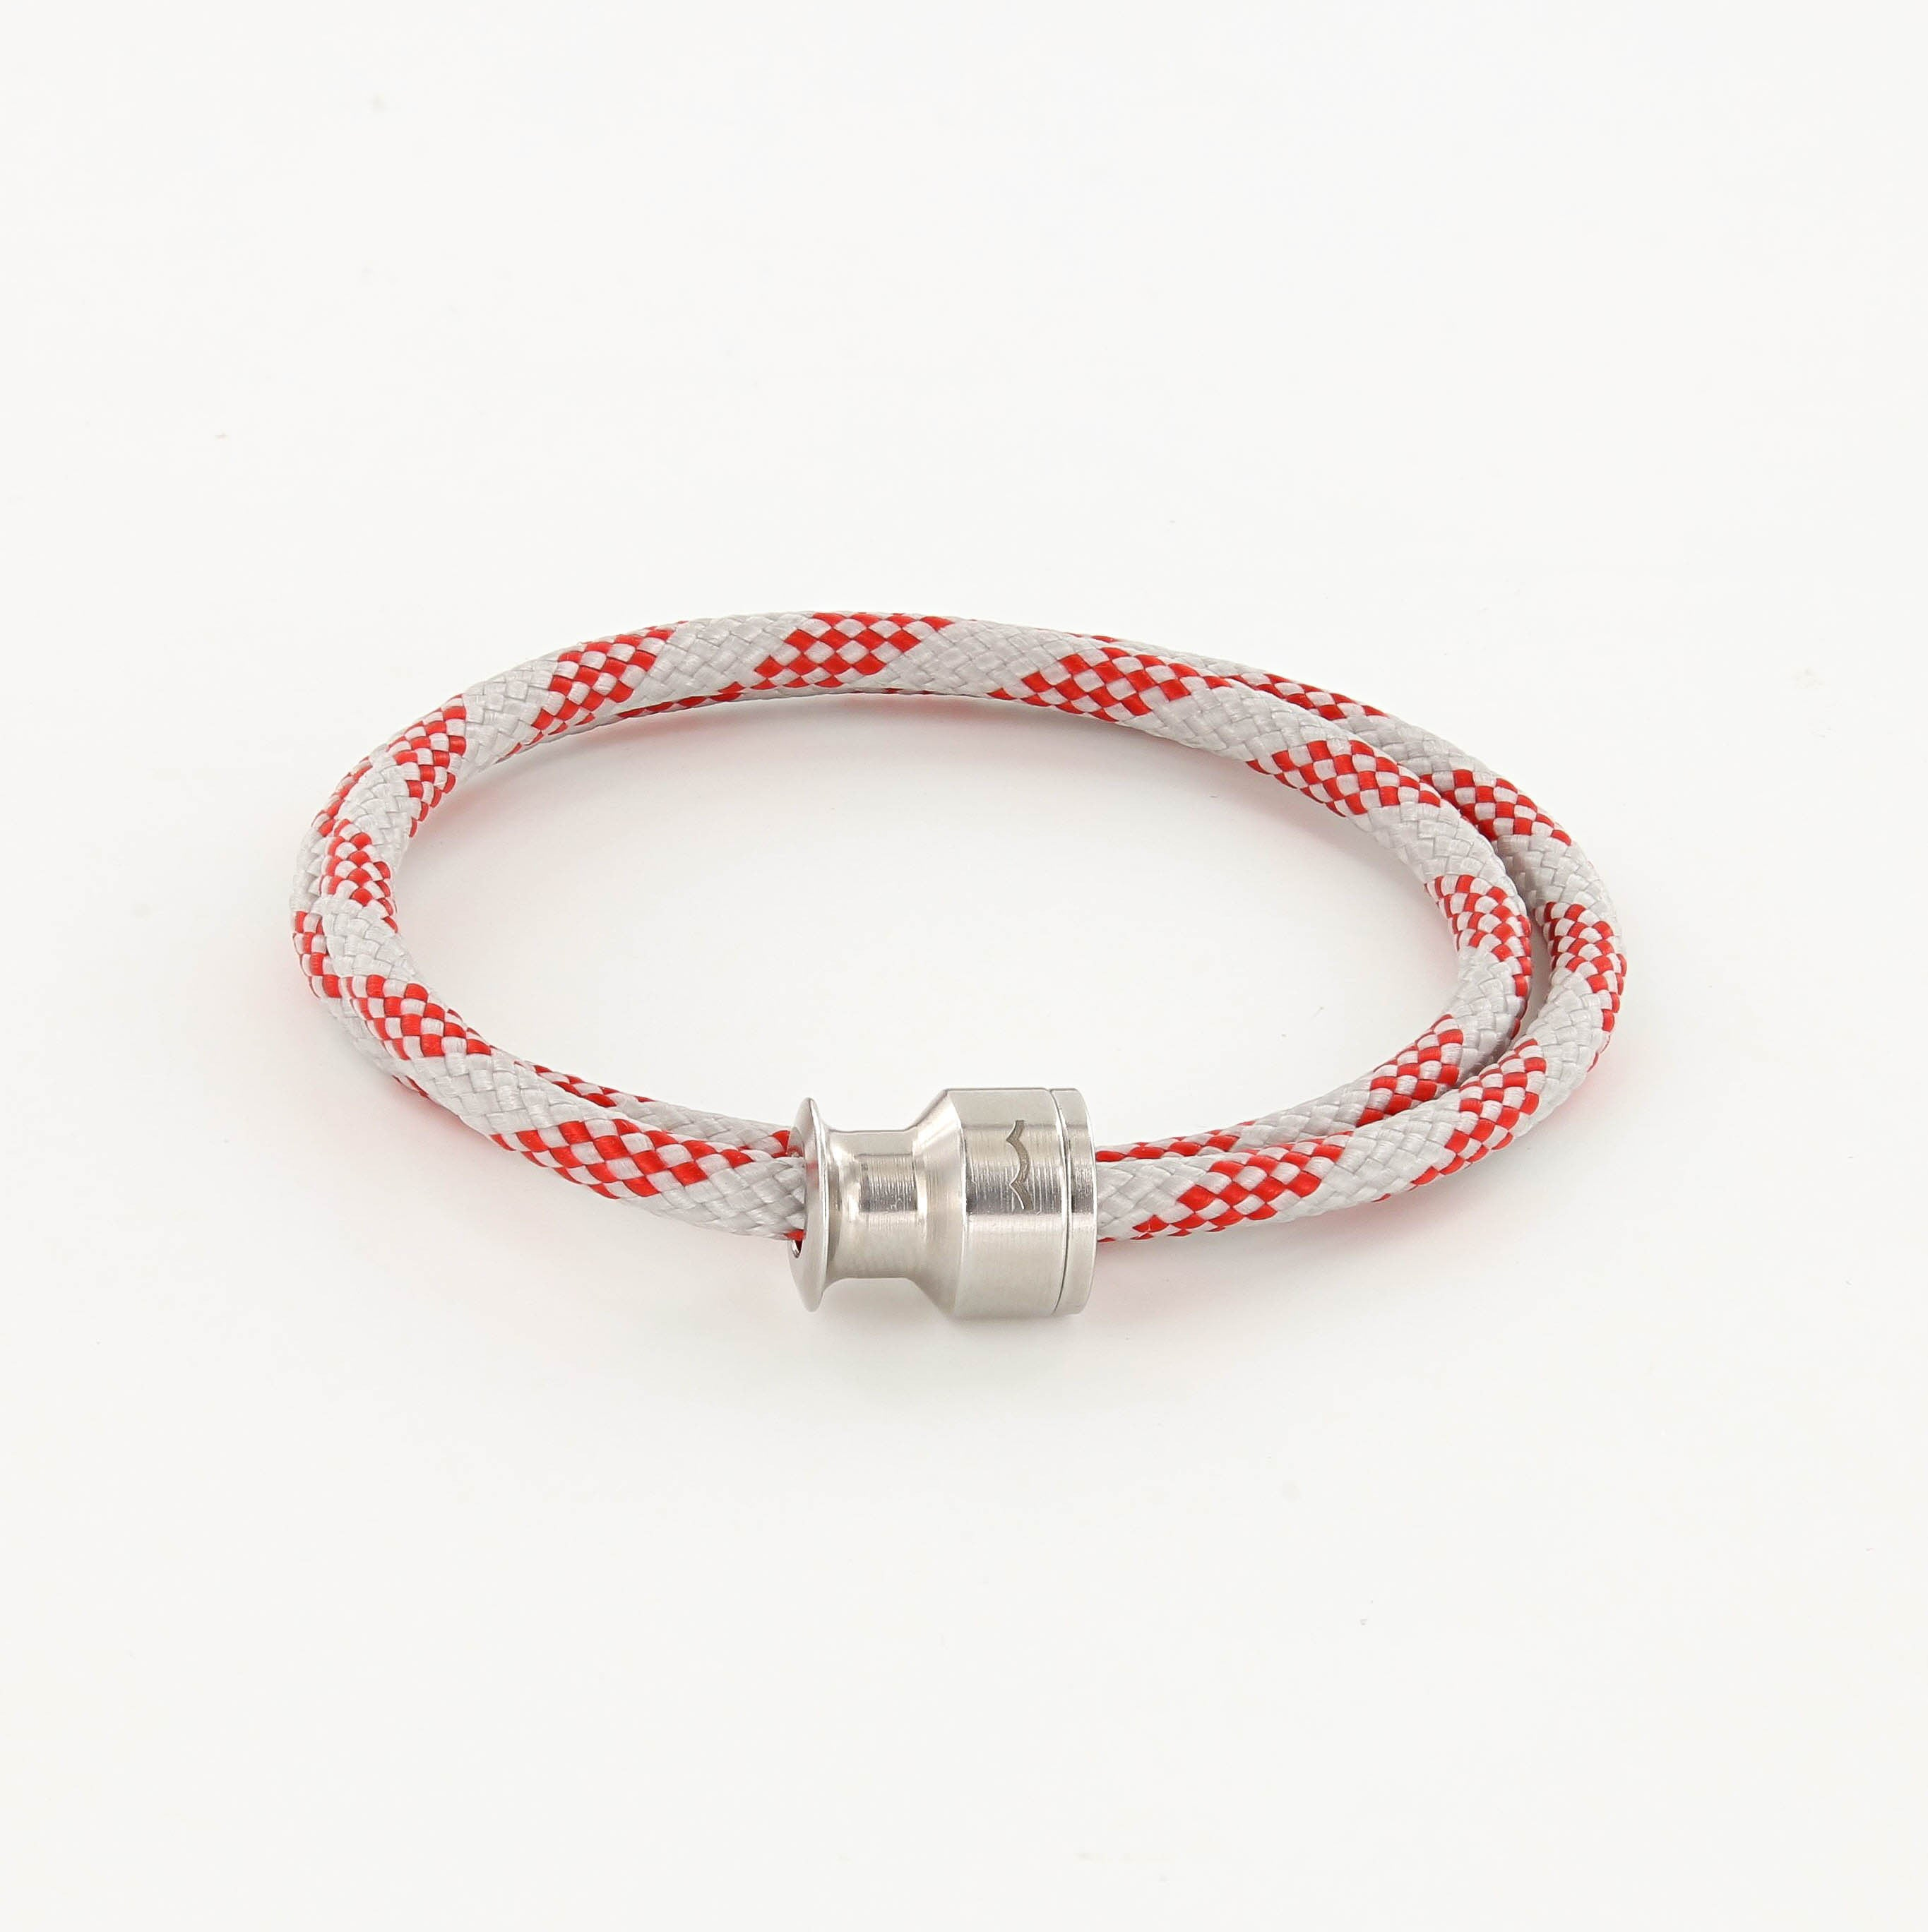 rope things buddhist lucky tibetan protection bracelet copy handmade knotsattracts knots luck products all of good kundalinispirit